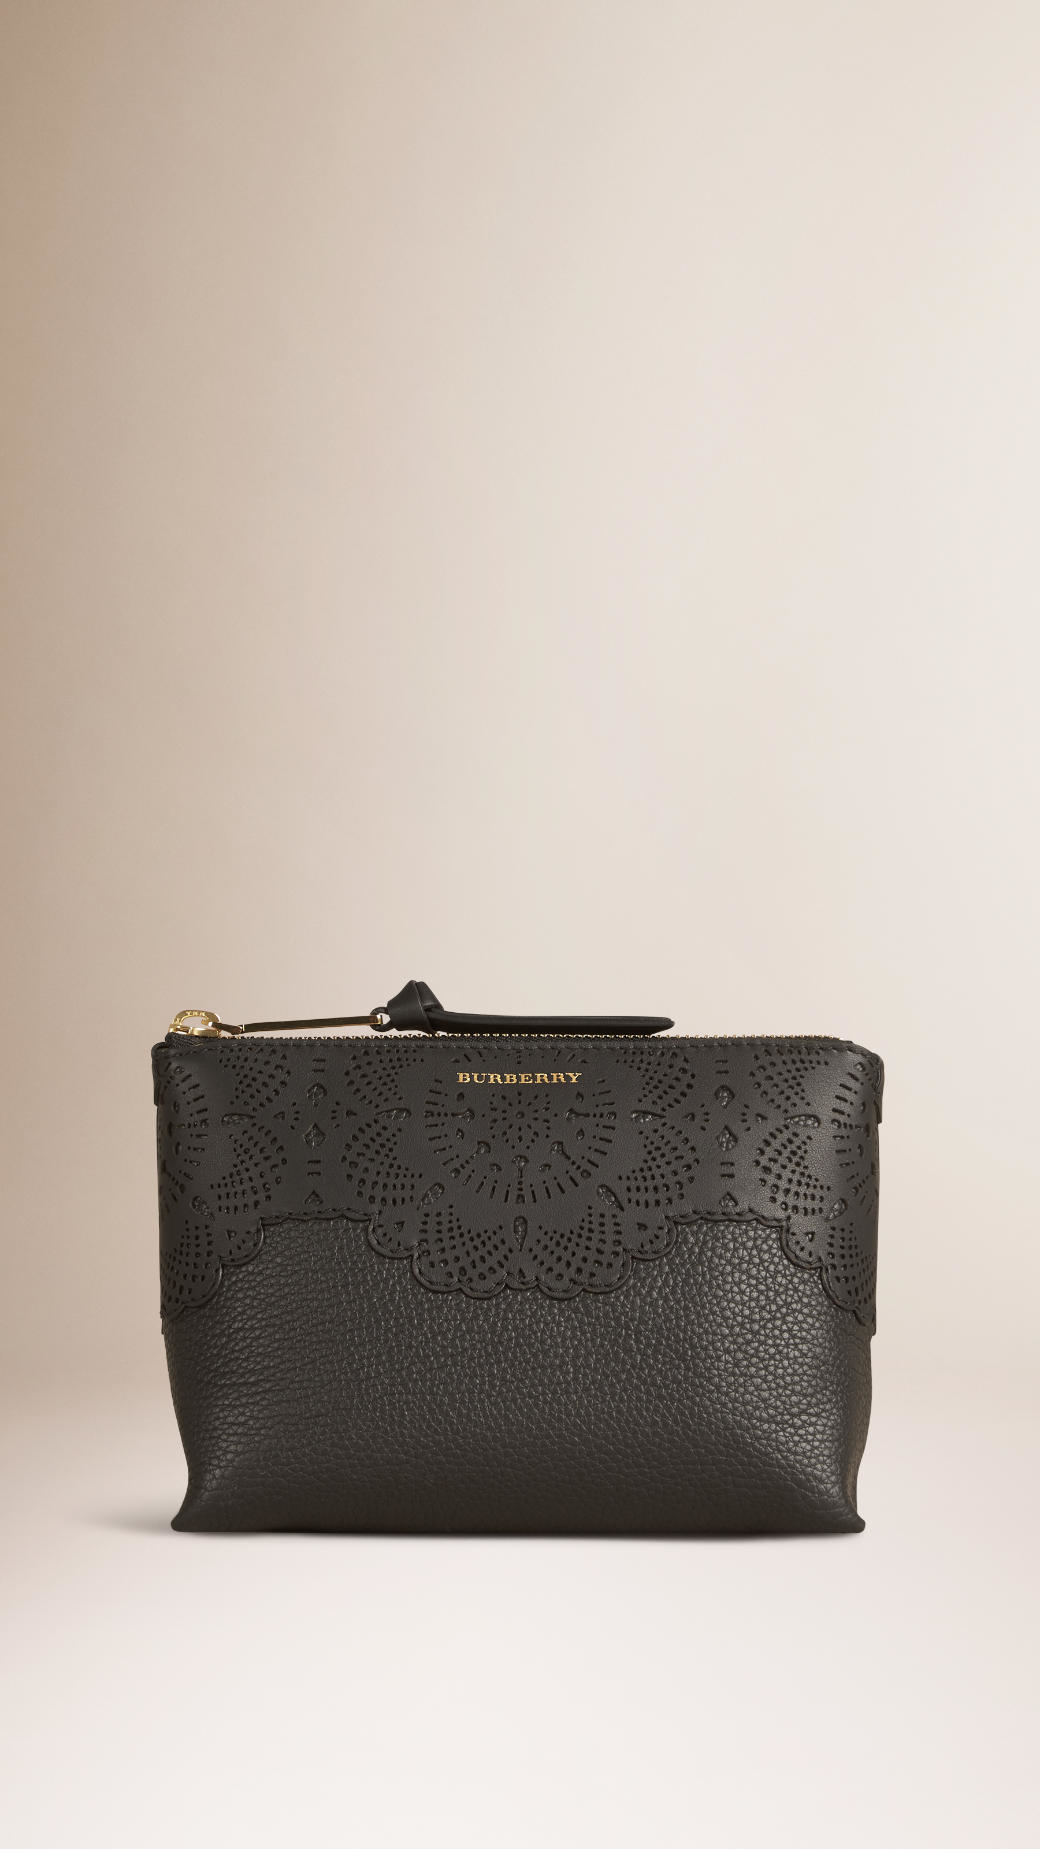 a1932922d604 Burberry Medium Grained Leather Beauty Pouch in Black